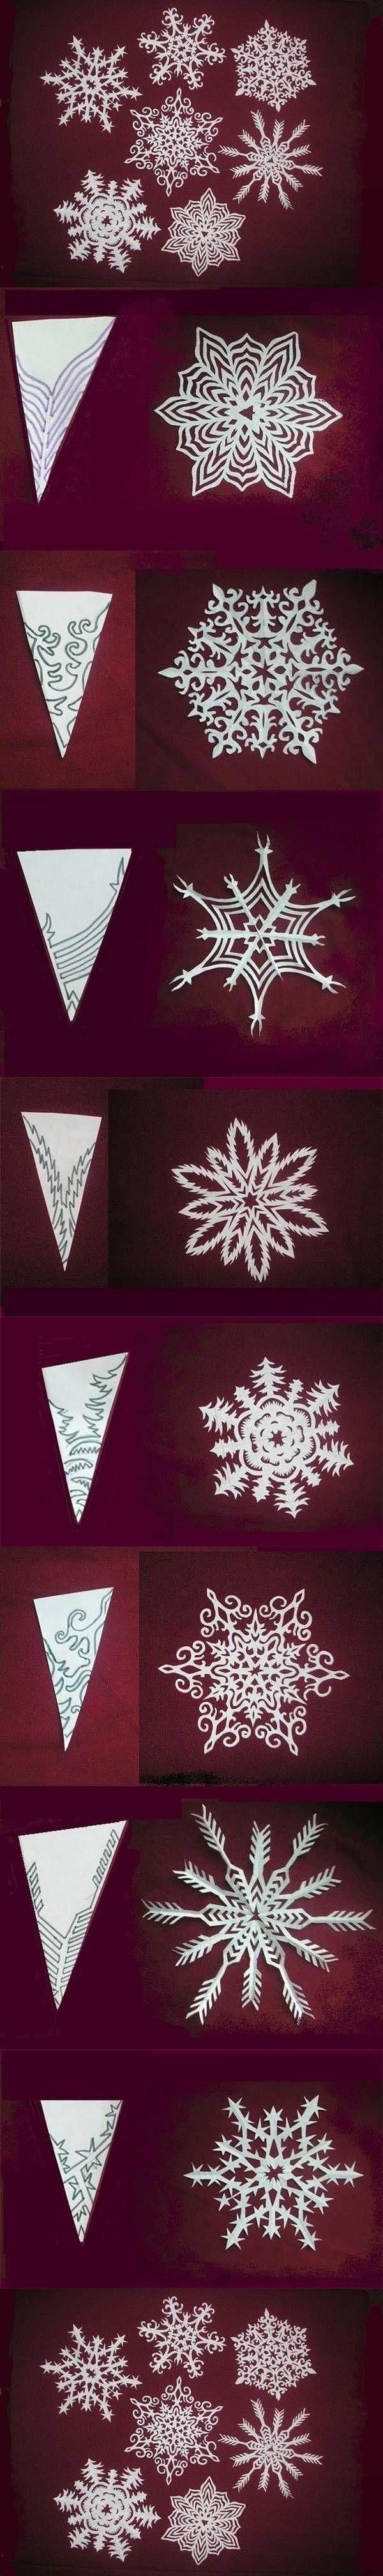 How to Make Snow Flakes by purtiful images | Purtiful images                                                                                                                                                                                 More